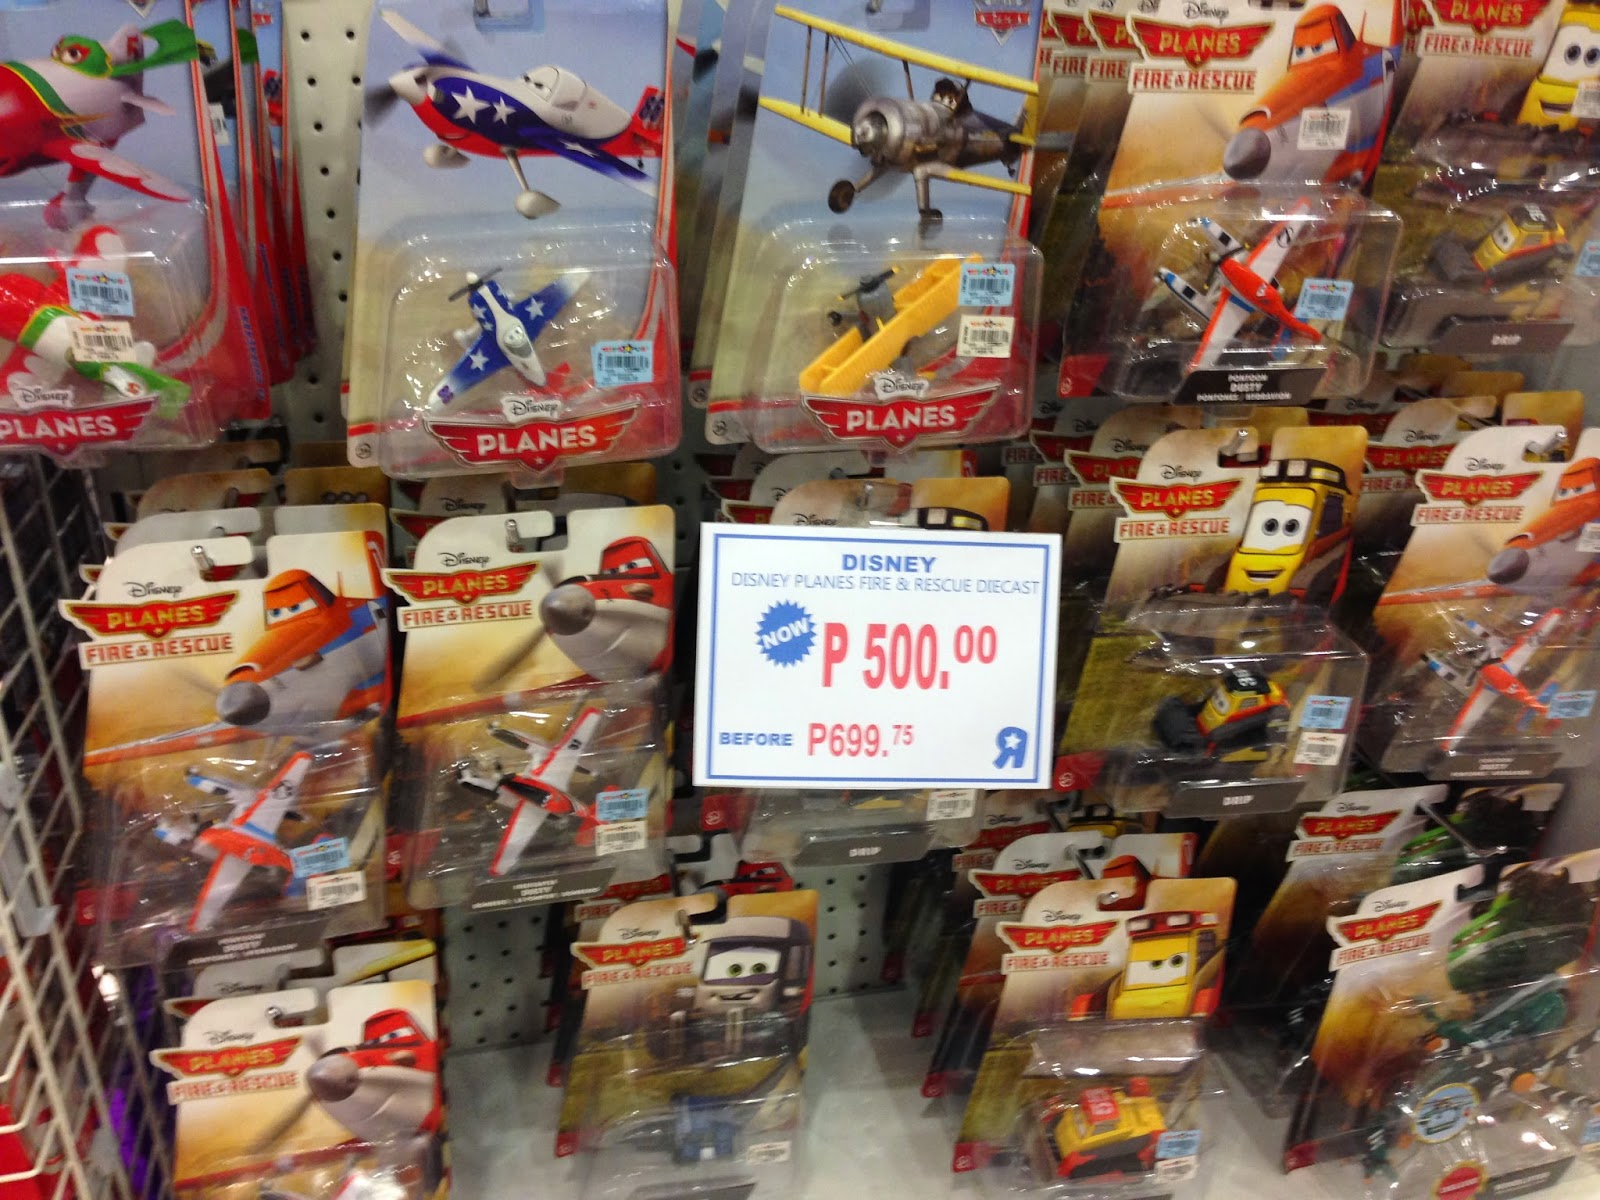 Toy Sale in Manila, Philippines 2015 : Disney Planes Die-Cast Toys on SALE